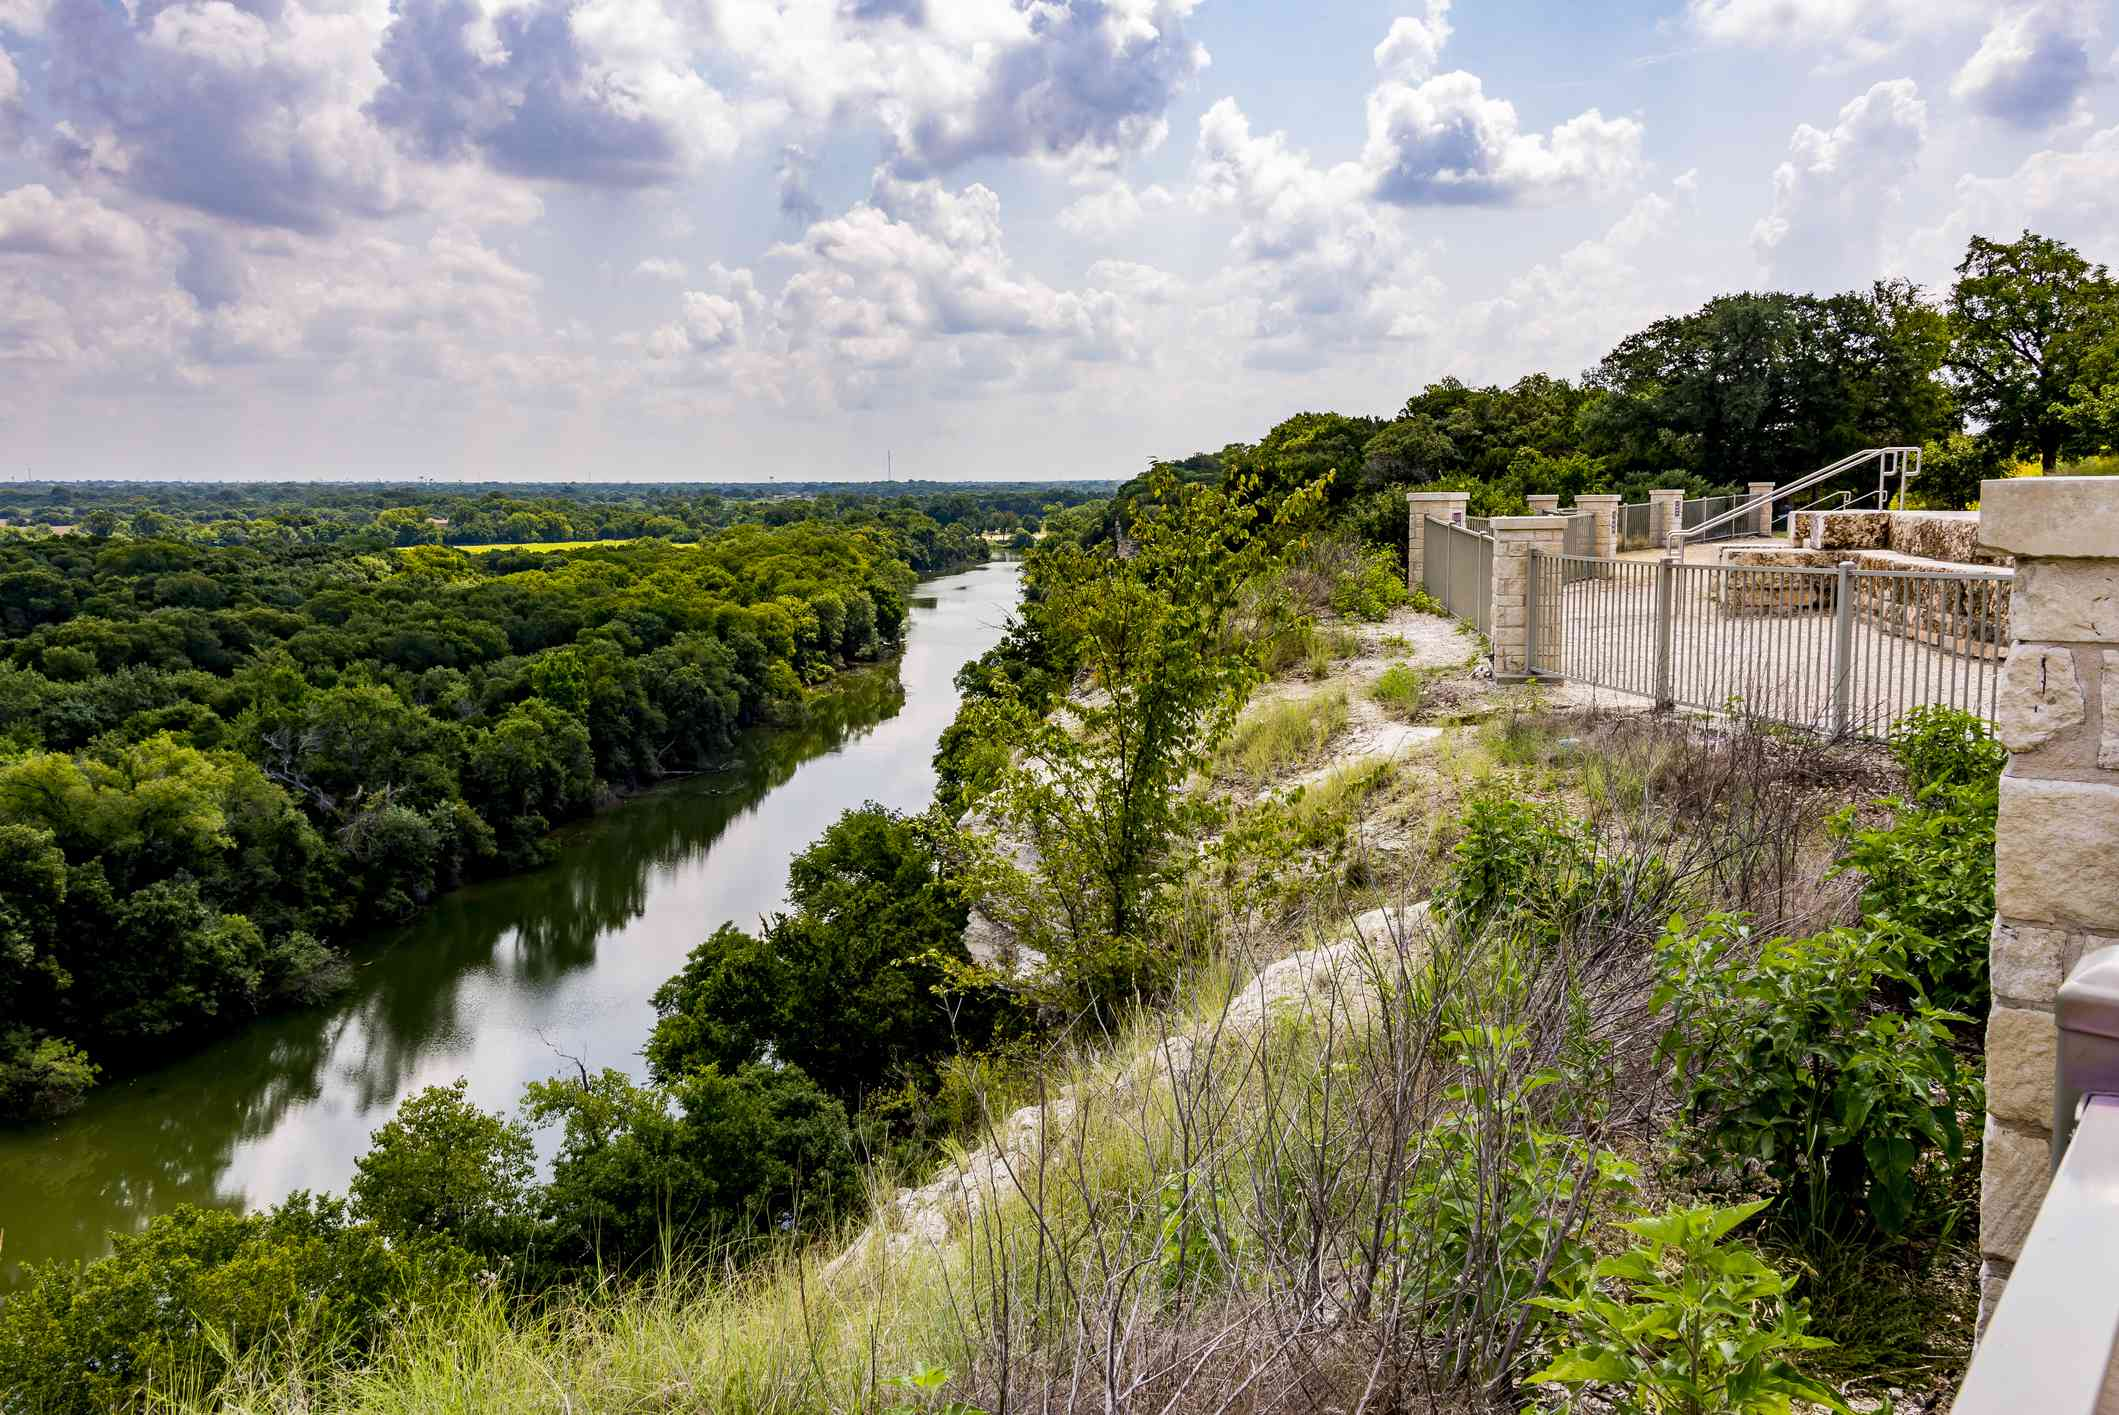 The Brazos River and Texas Hill Country beyond, as seen from the area of Cameron Park cliffs known as Emmons Cliff.